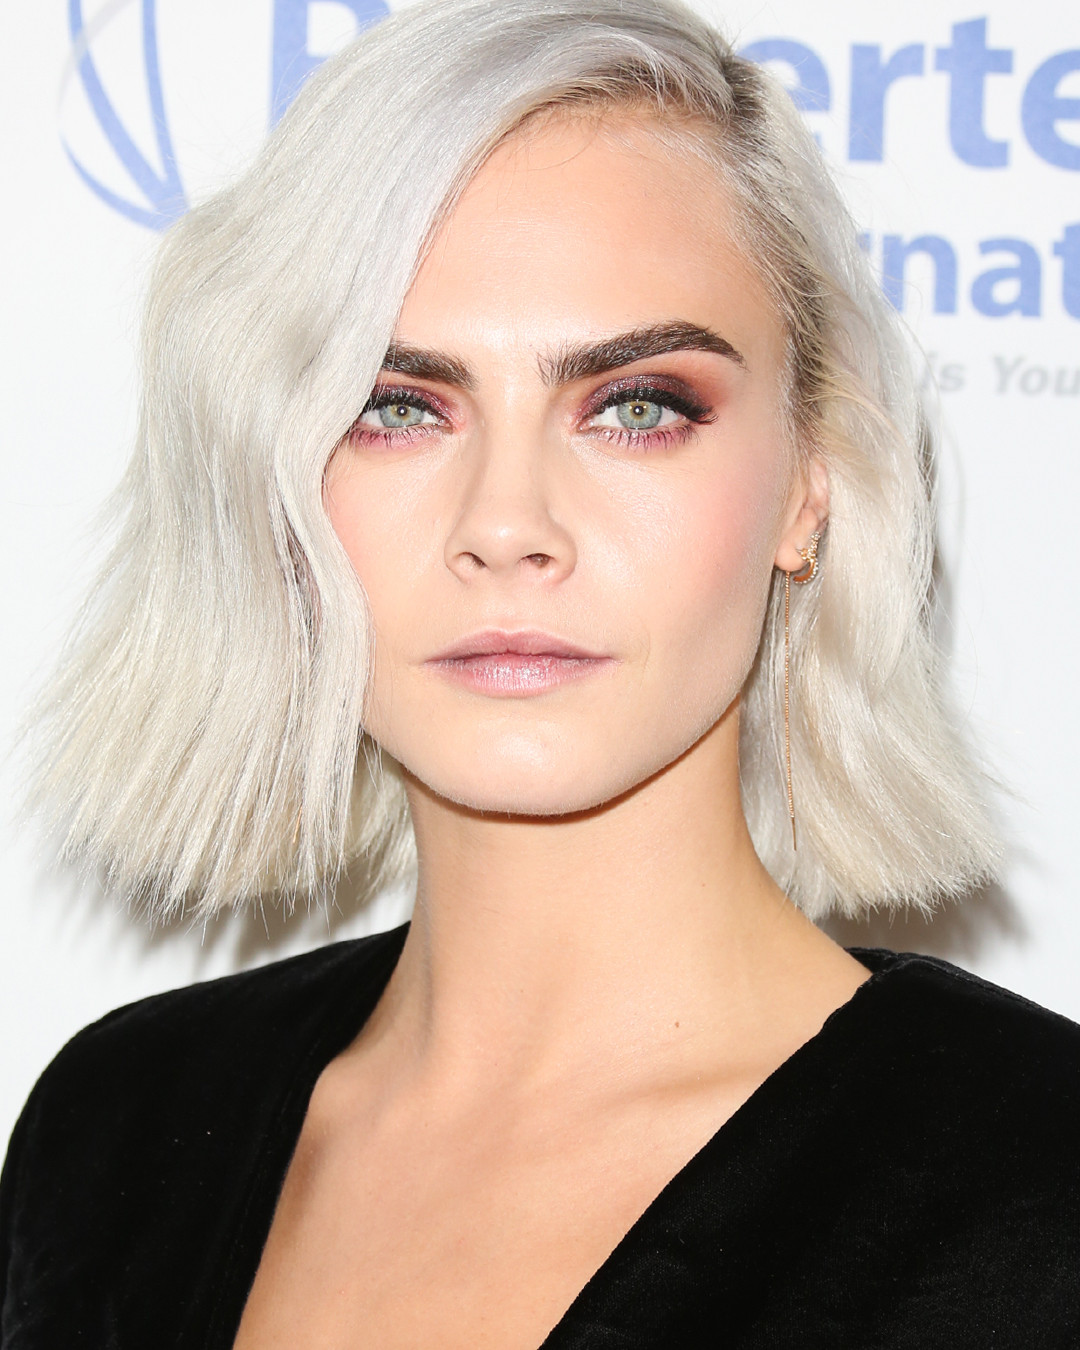 Cara Delevingne's Makeup Artist Shares How to Achieve Breakout-Free Skin